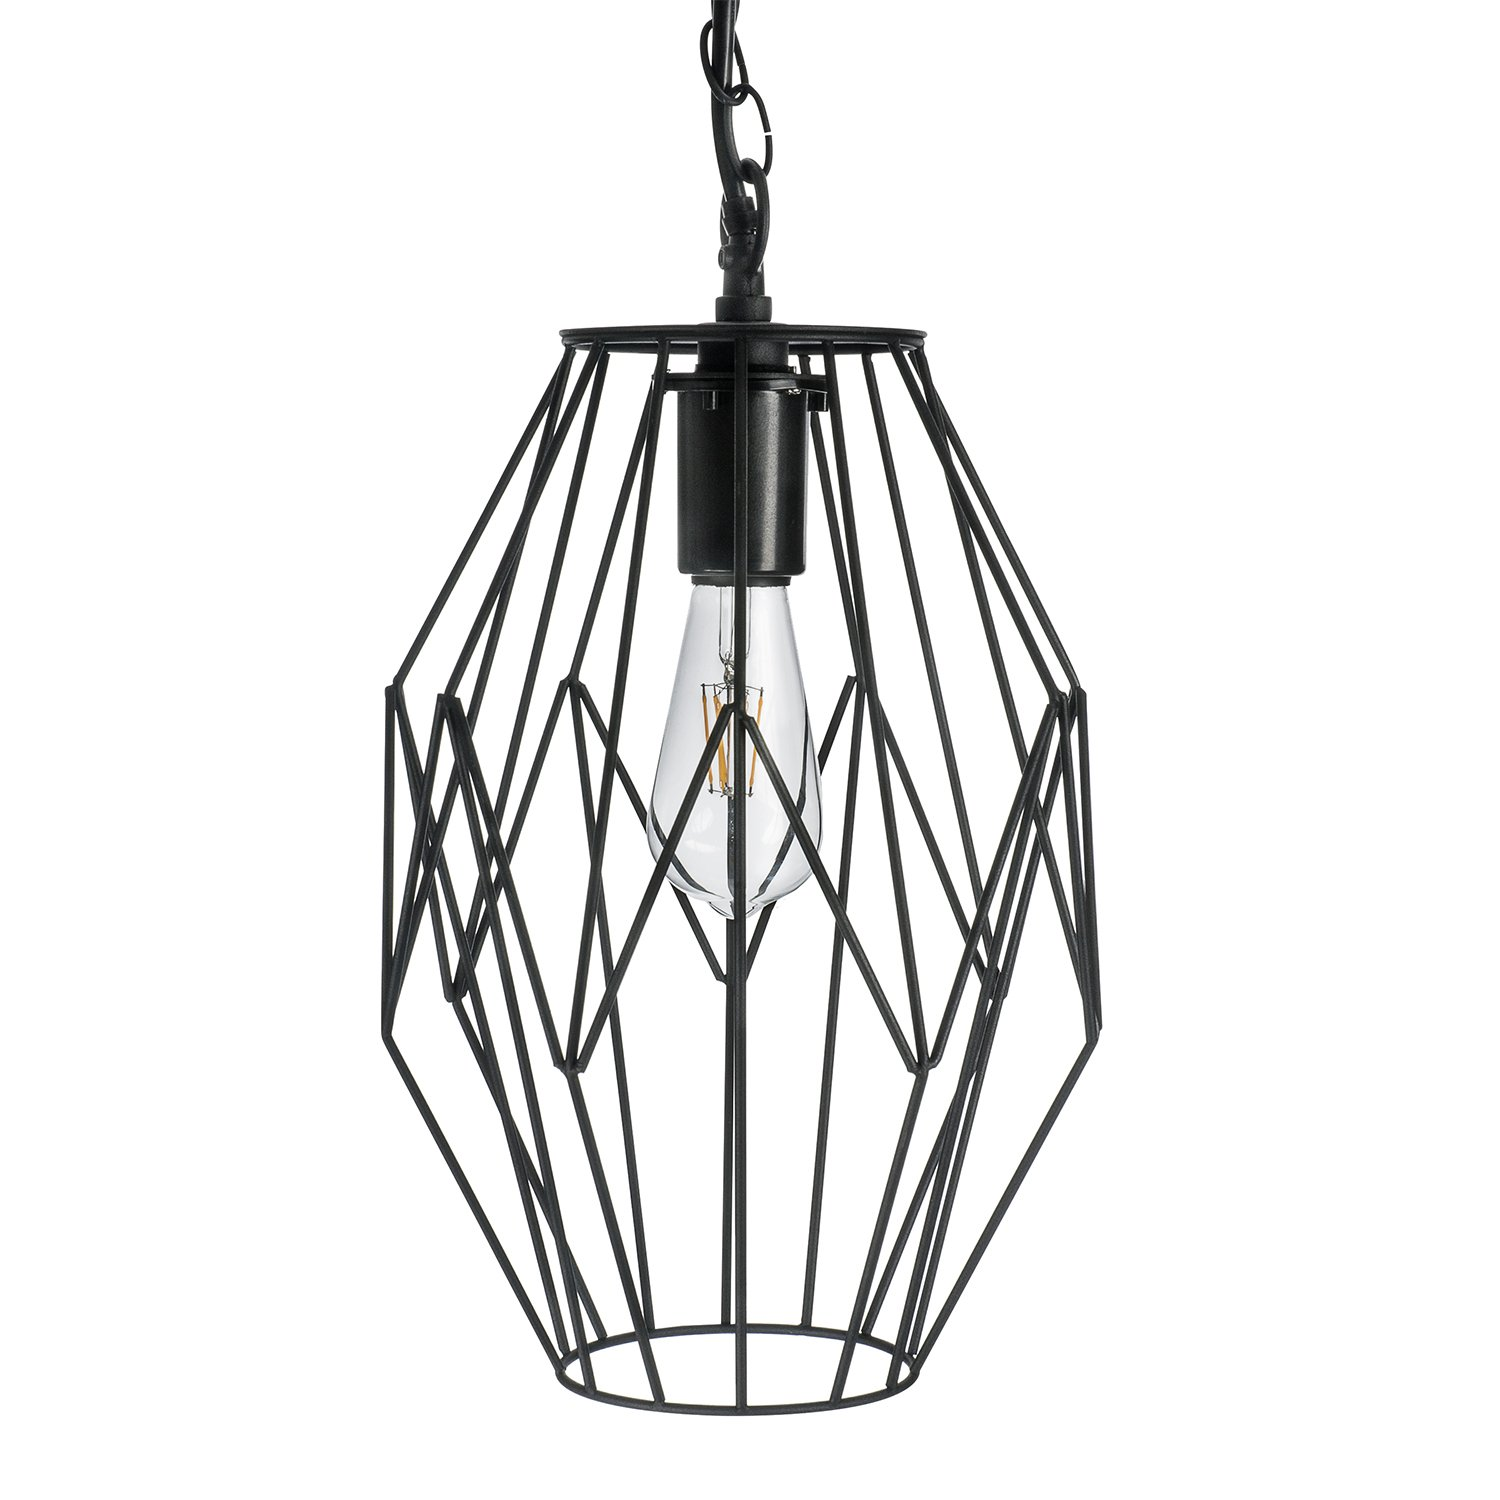 Paradise by Sterno Home Outdoor LED Pendant Gazebo Light, 120V, 540 Lumens, 6 Watts